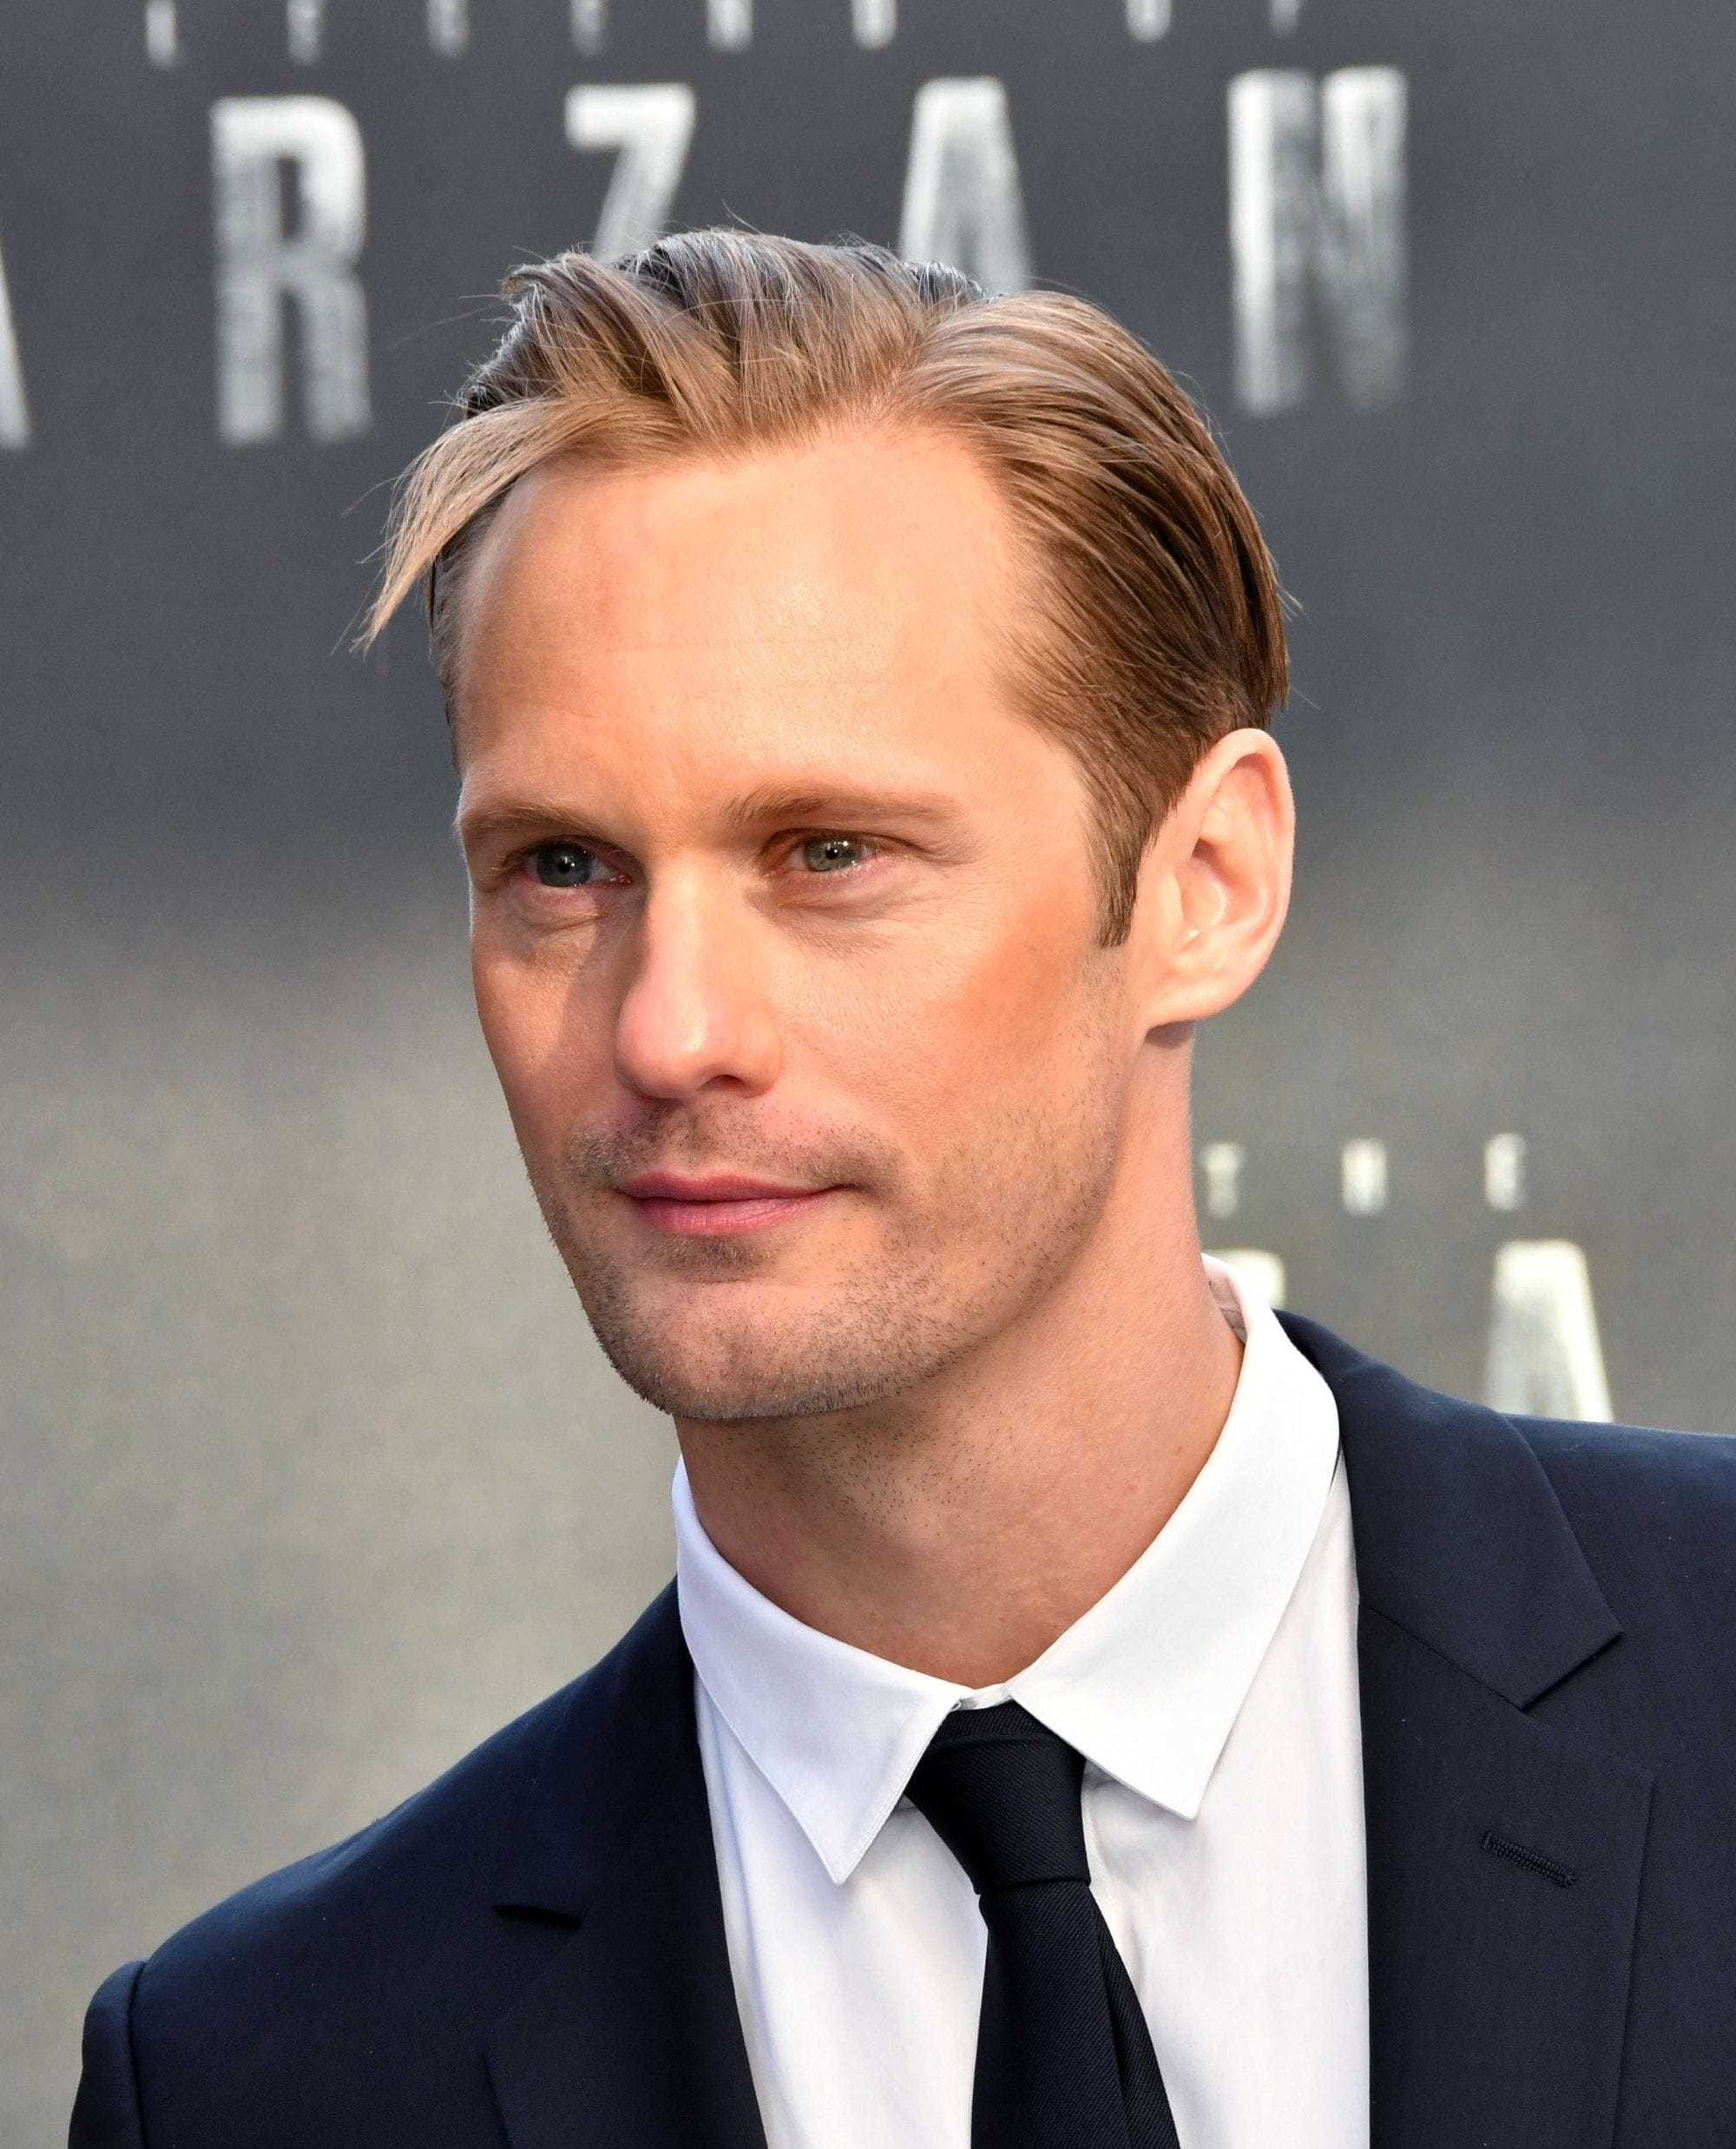 Hairstyles for receding hairline: Close-up of Alexander Skarsgard with blonde hair in a piecey side parted comb over style